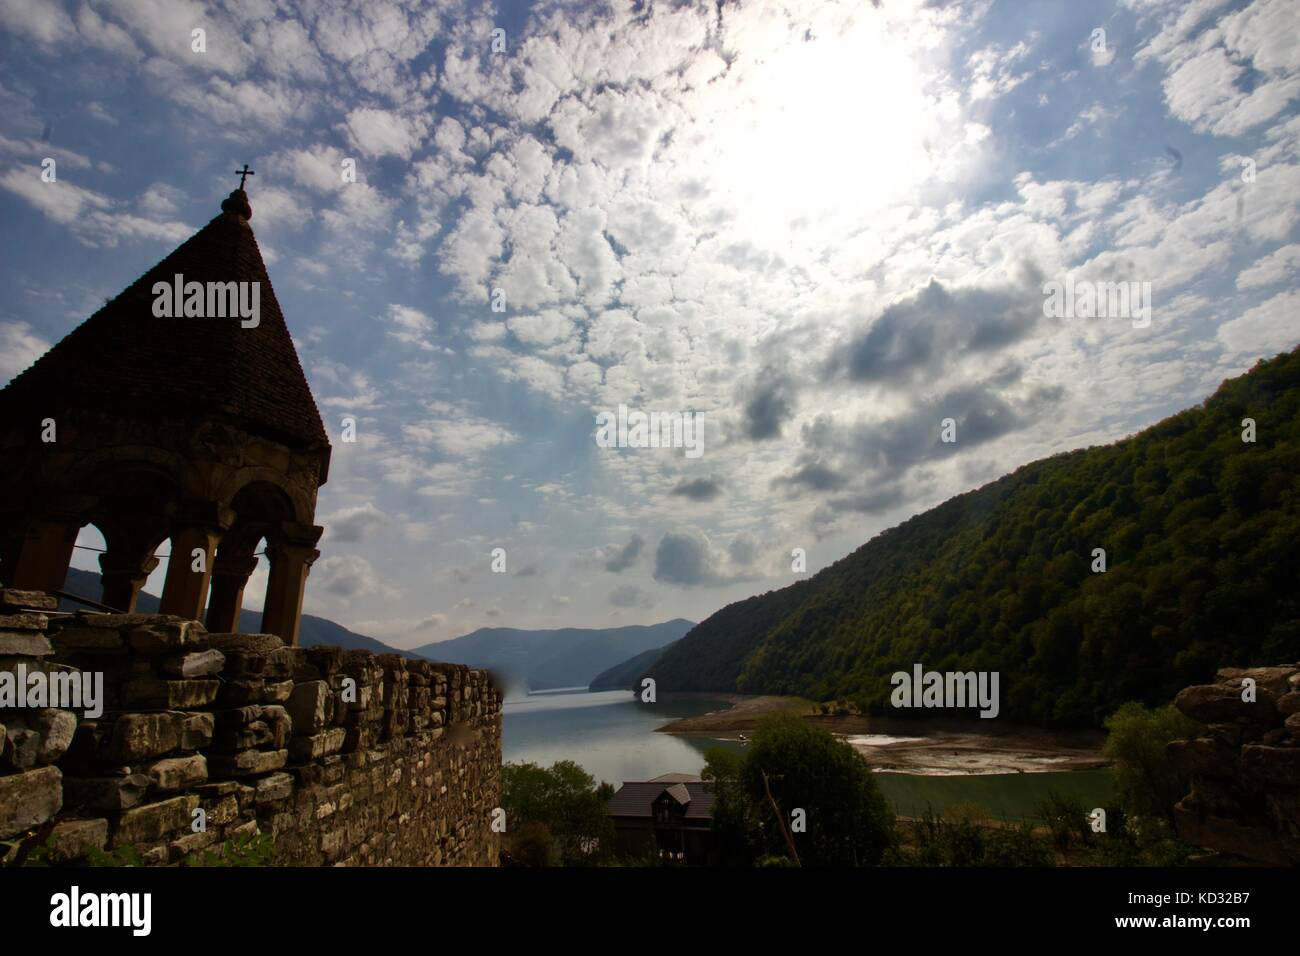 Ananuri Castle looking out over the Aragvi River - Stock Image